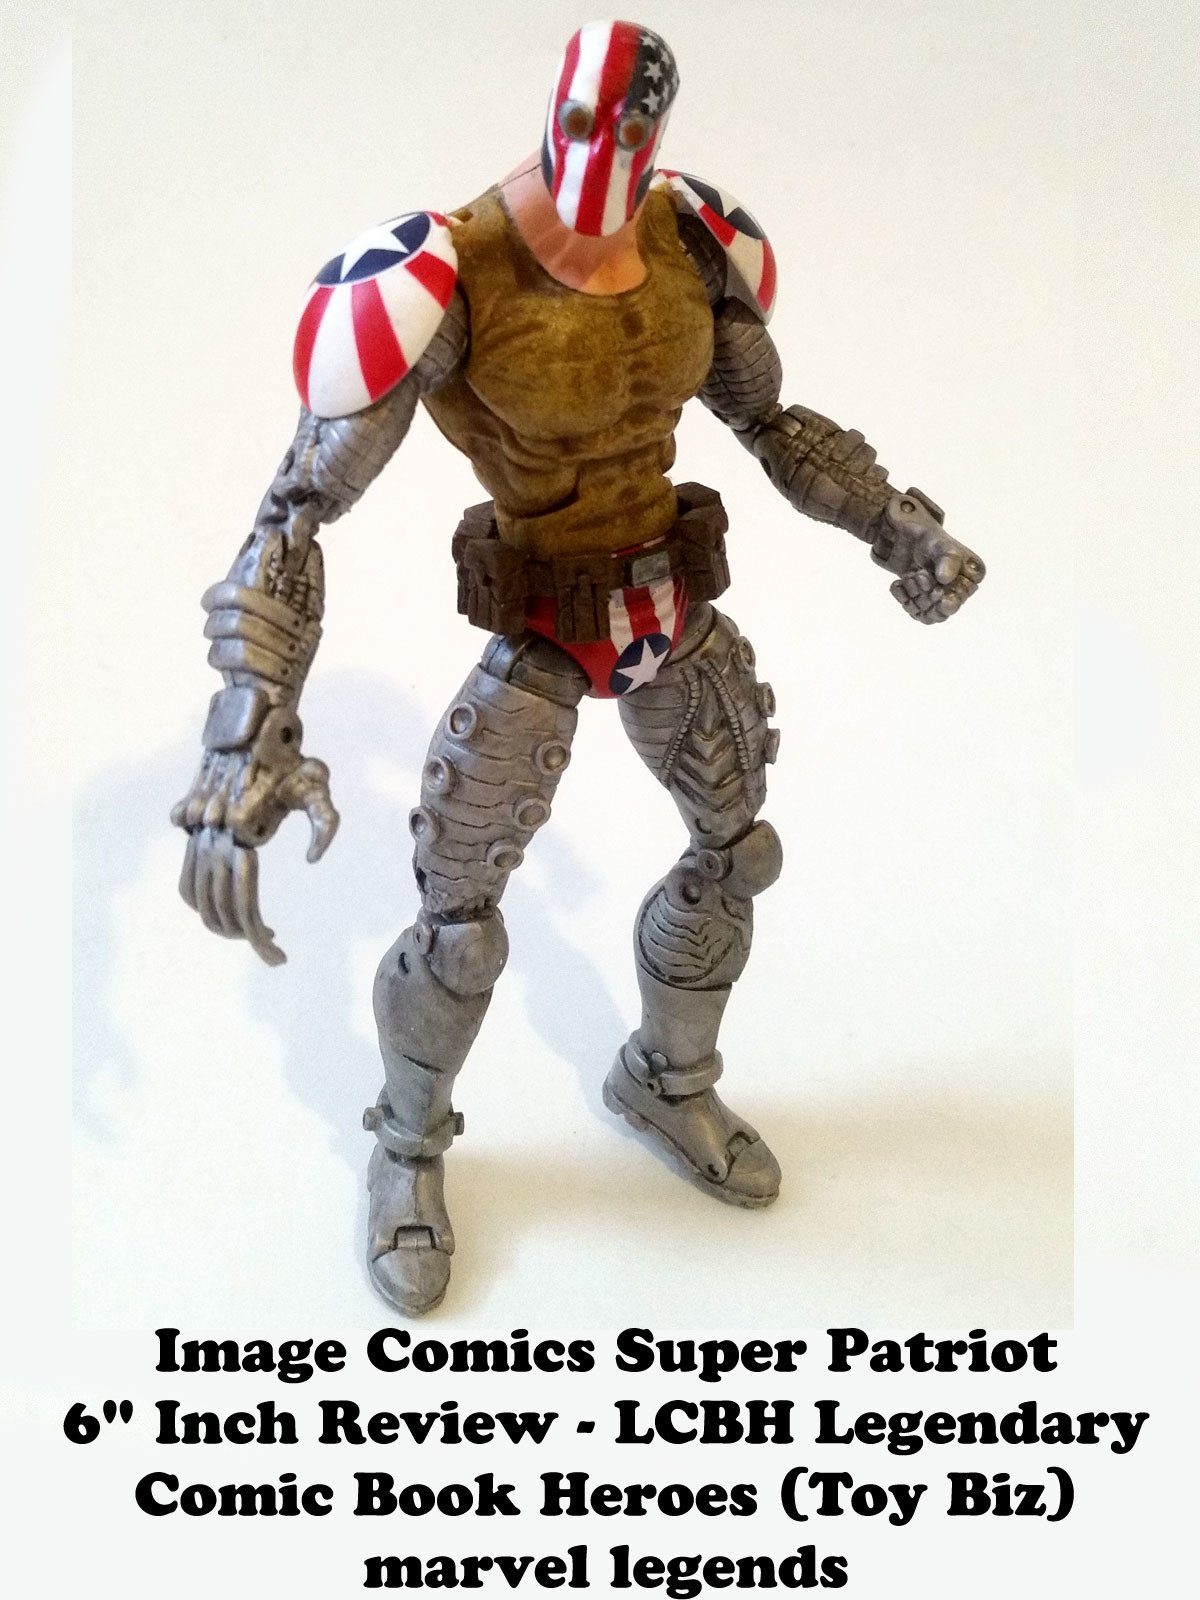 "Review: Image Comics Super Patriot 6"" Inch Review"